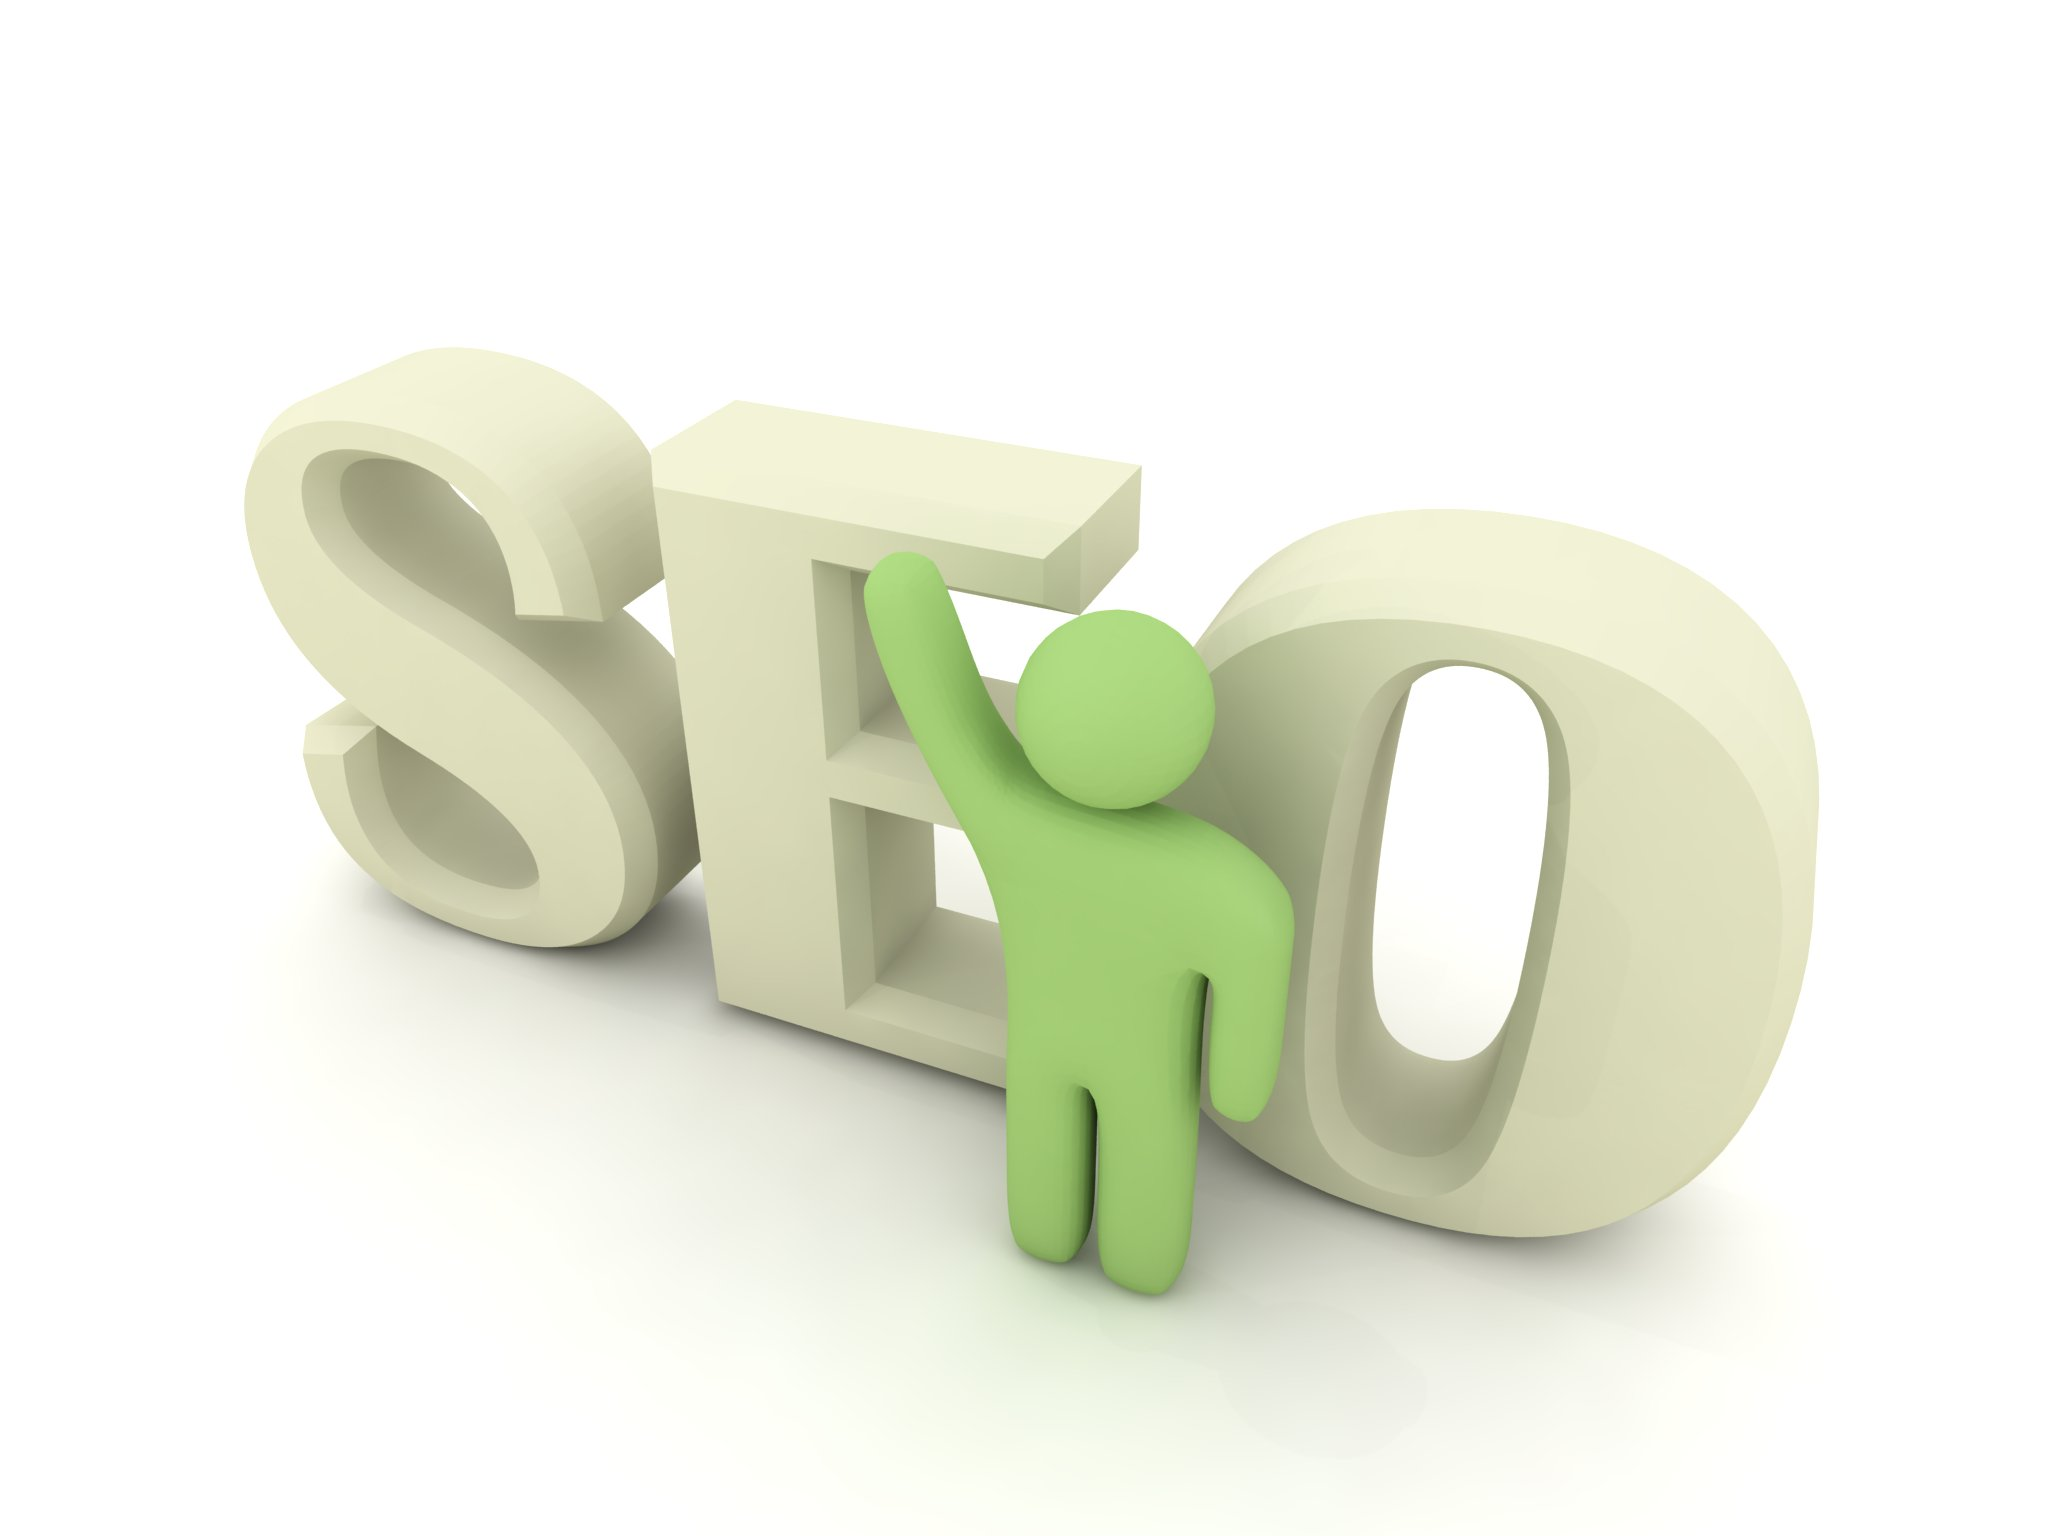 Affordable Seo In The Age Of The Internet